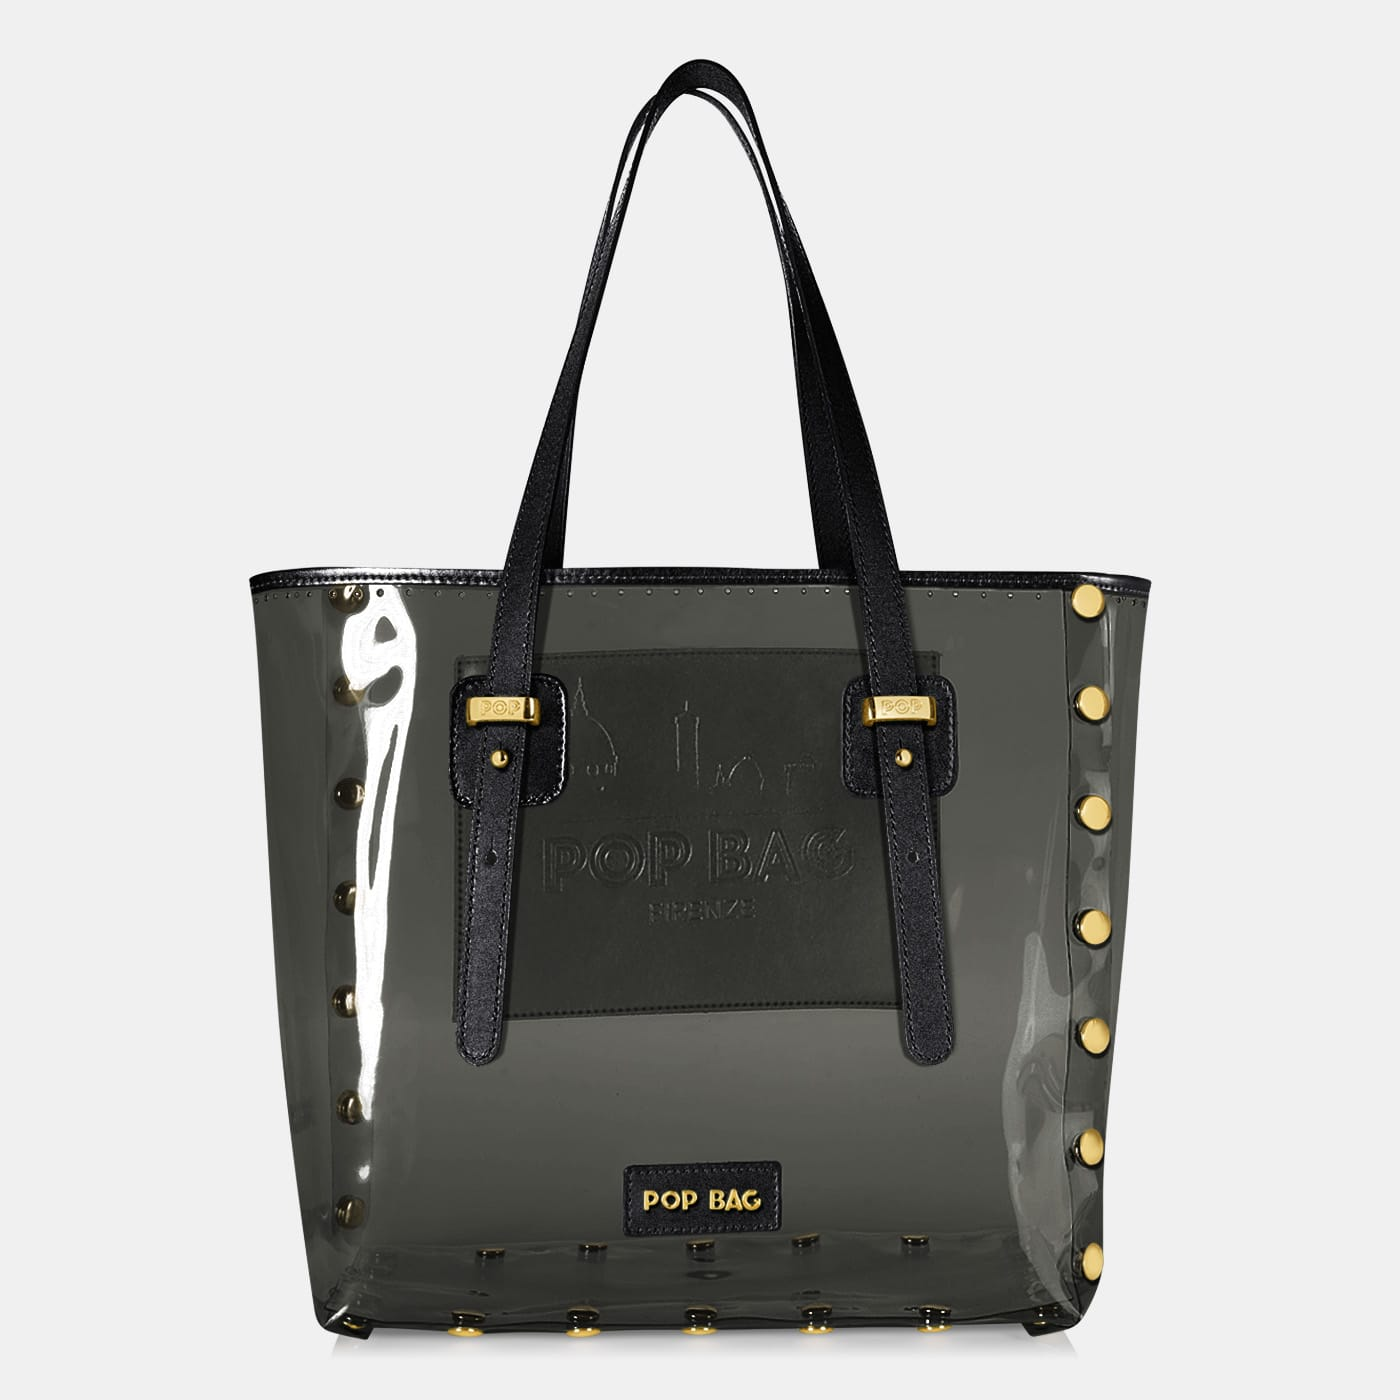 Pop Crystal Bag - Black - Large